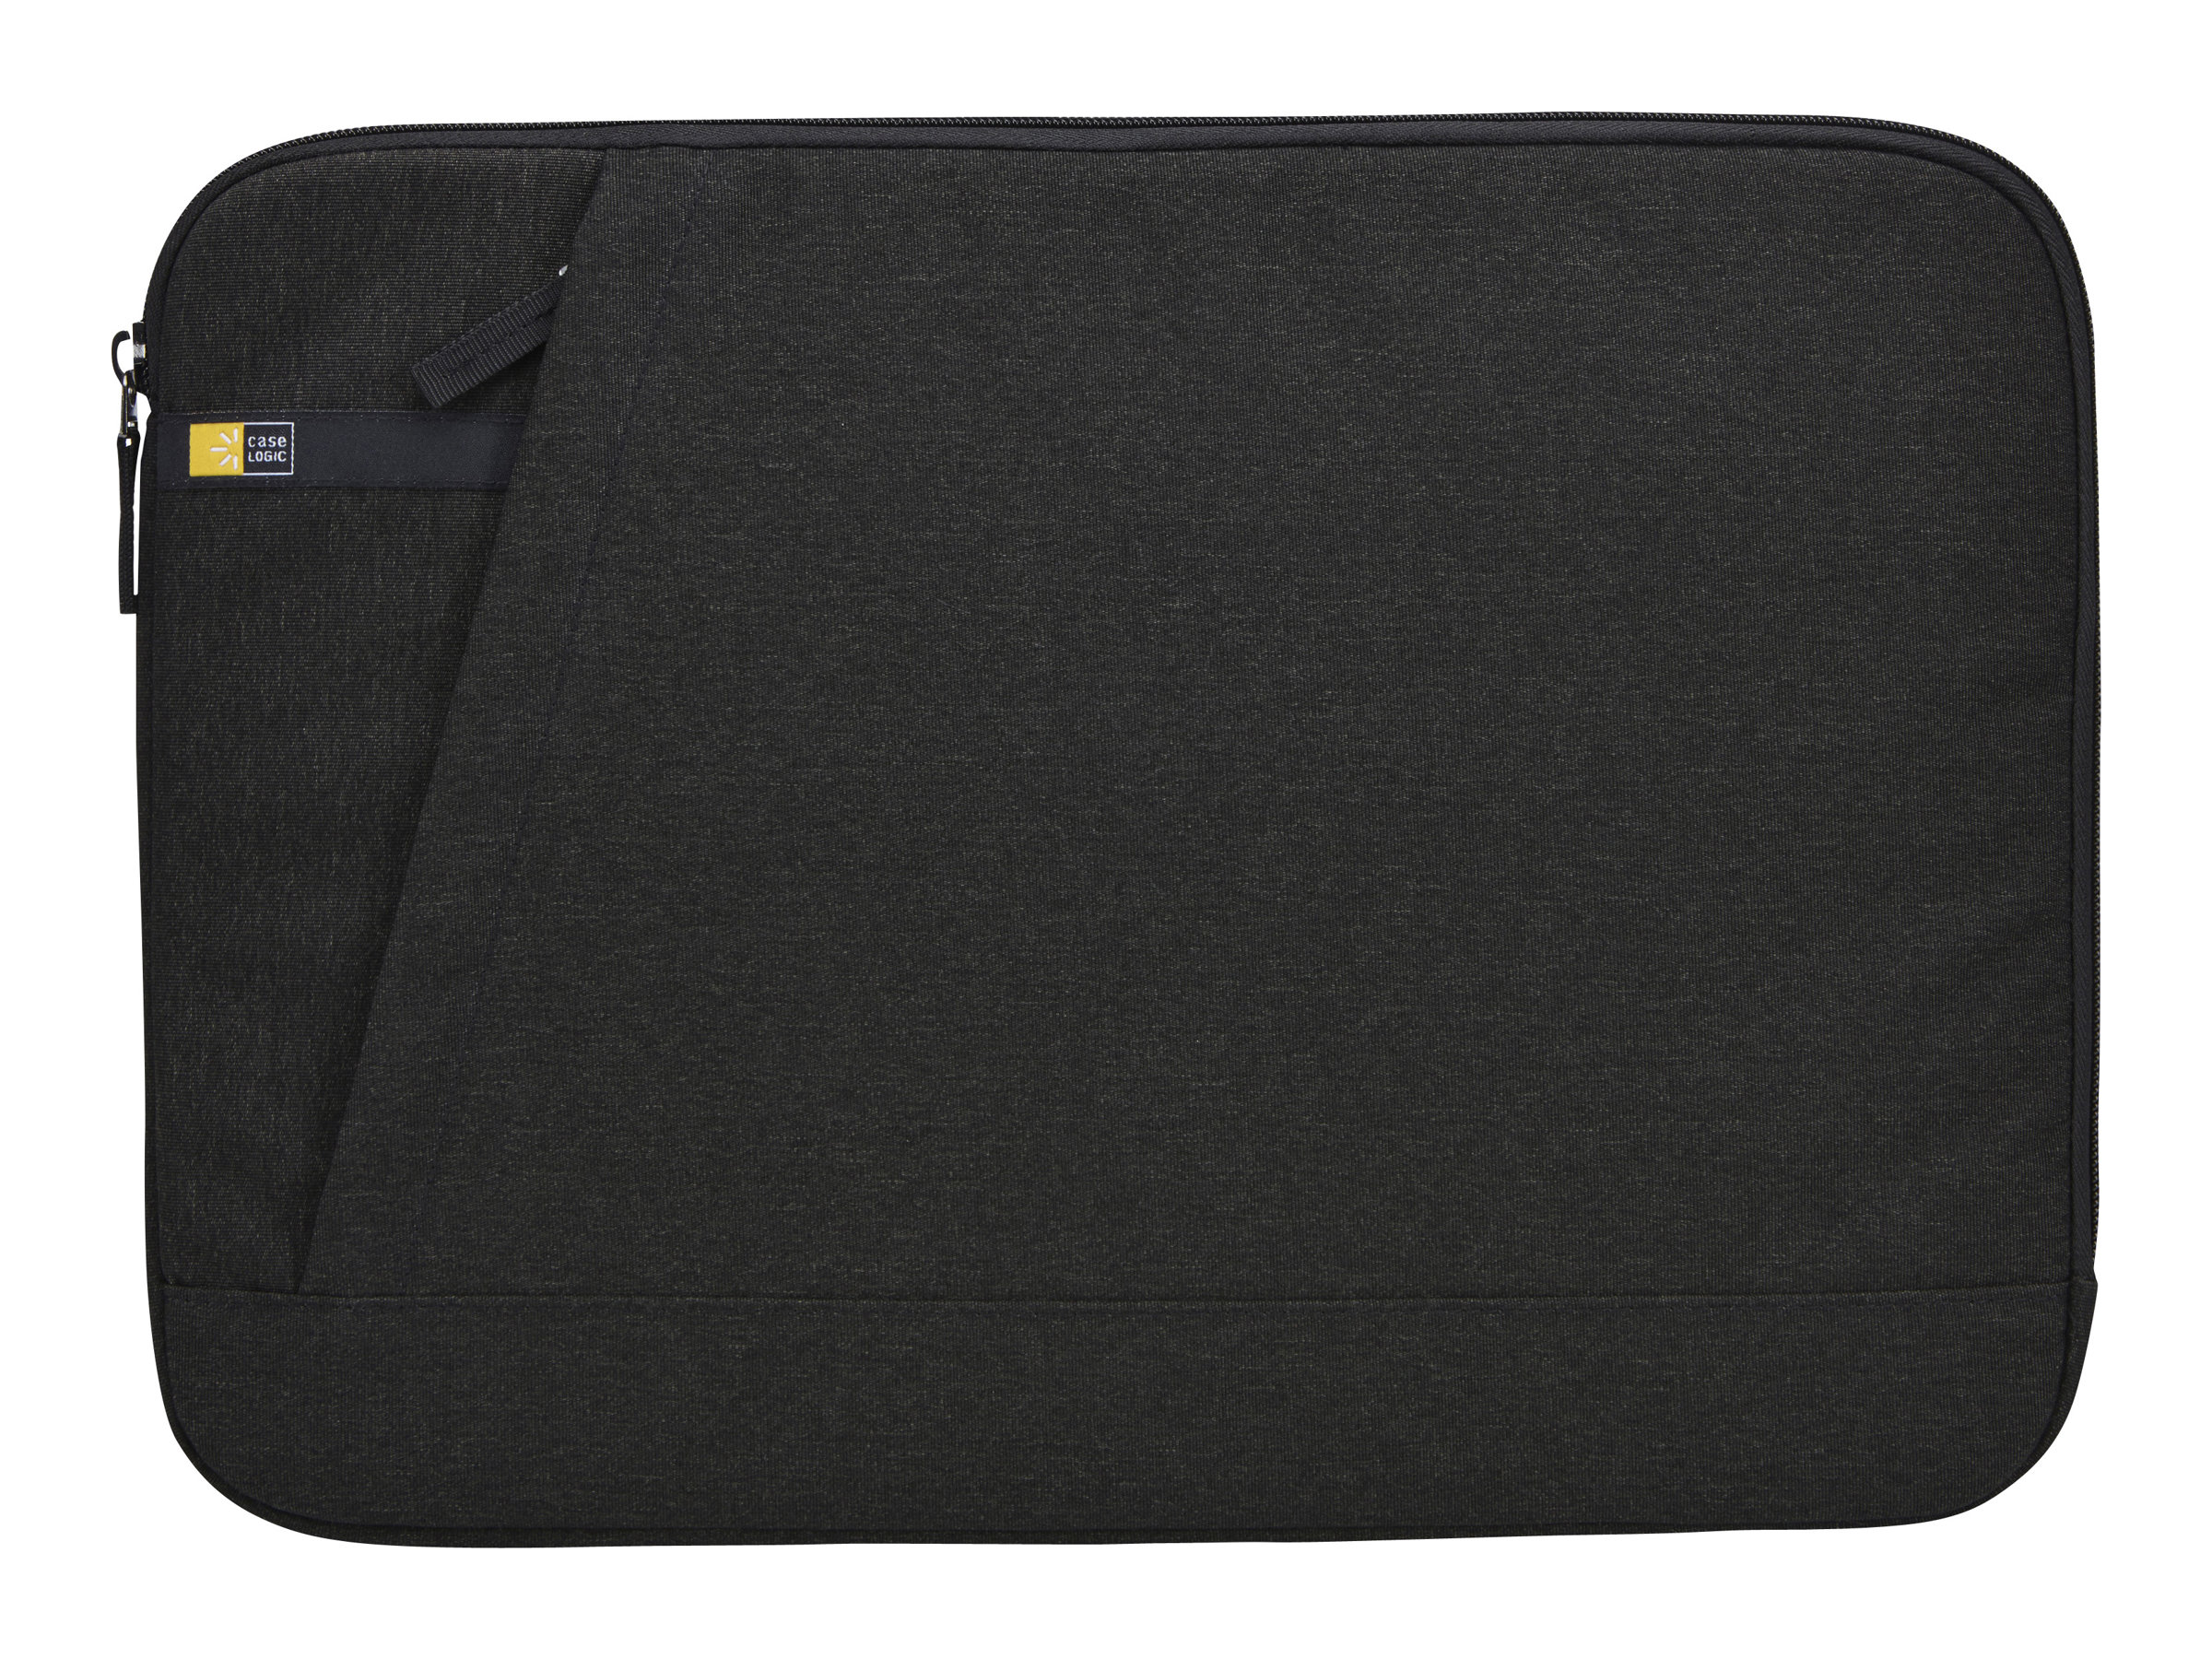 Case Logic Huxton 15.6 Laptop Sleeve, Black